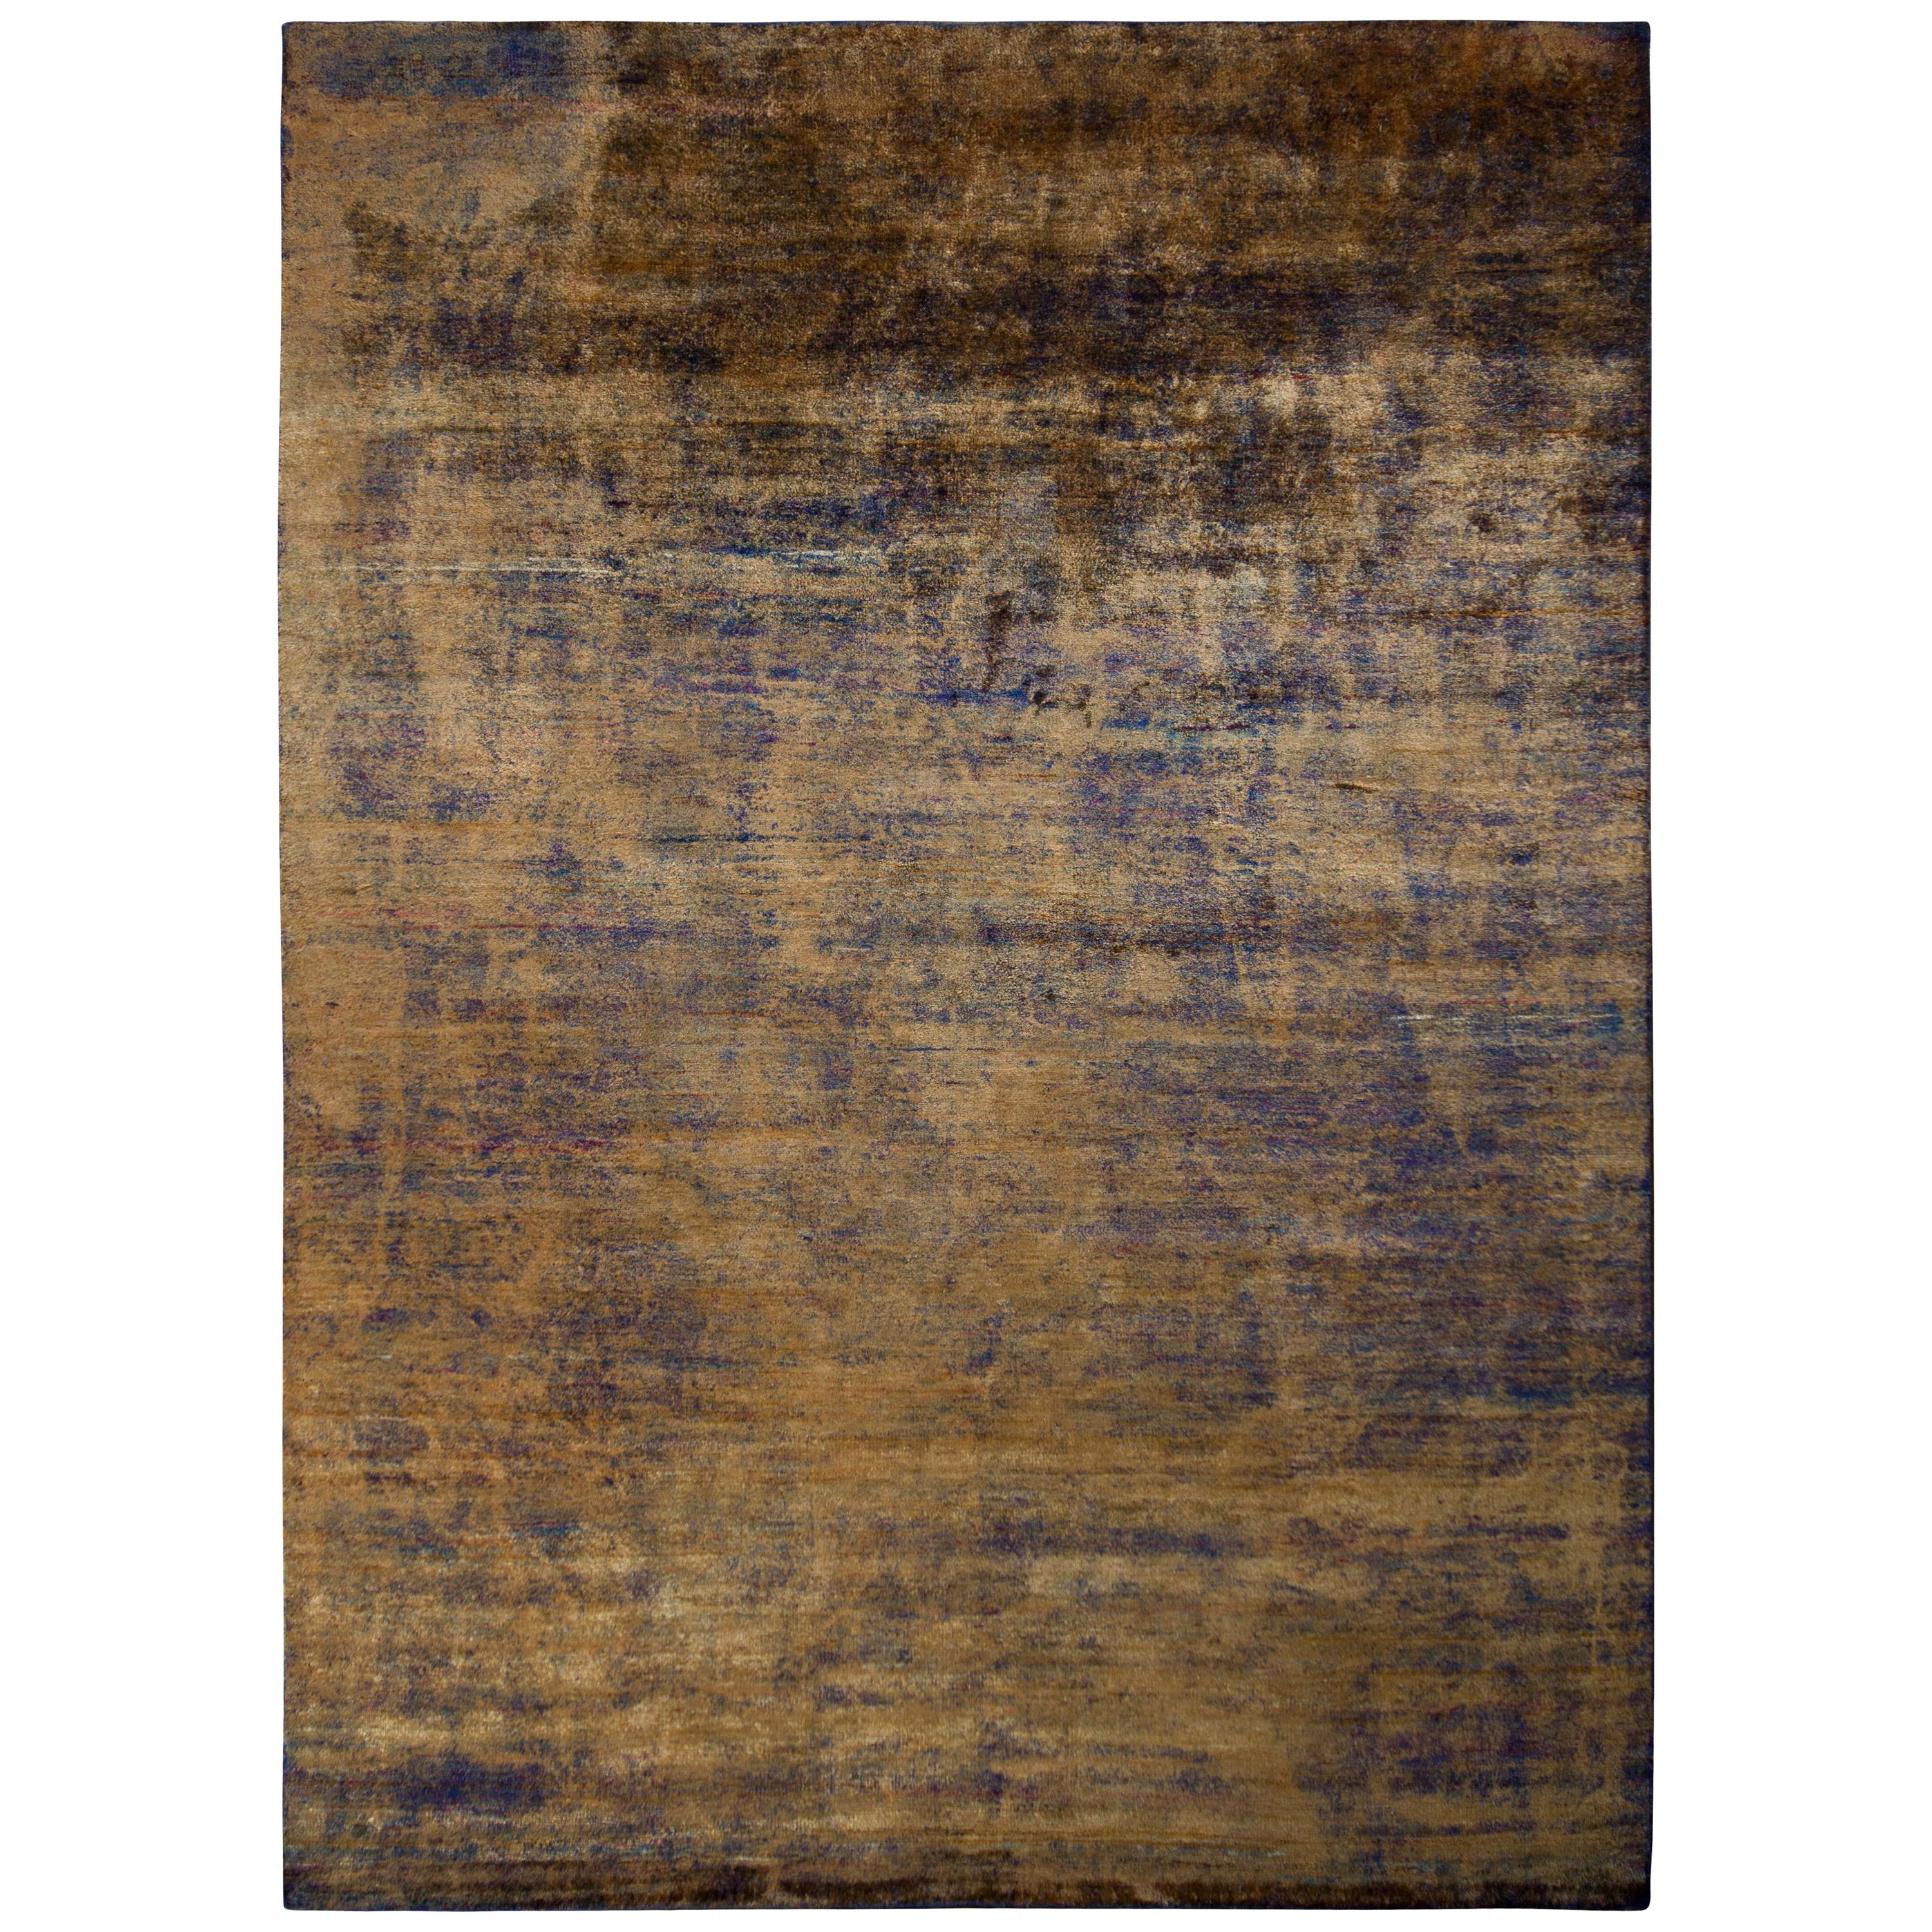 Rug & Kilim's Textural Modern Rug Gold Brown and Blue Abrashed Striped Pattern